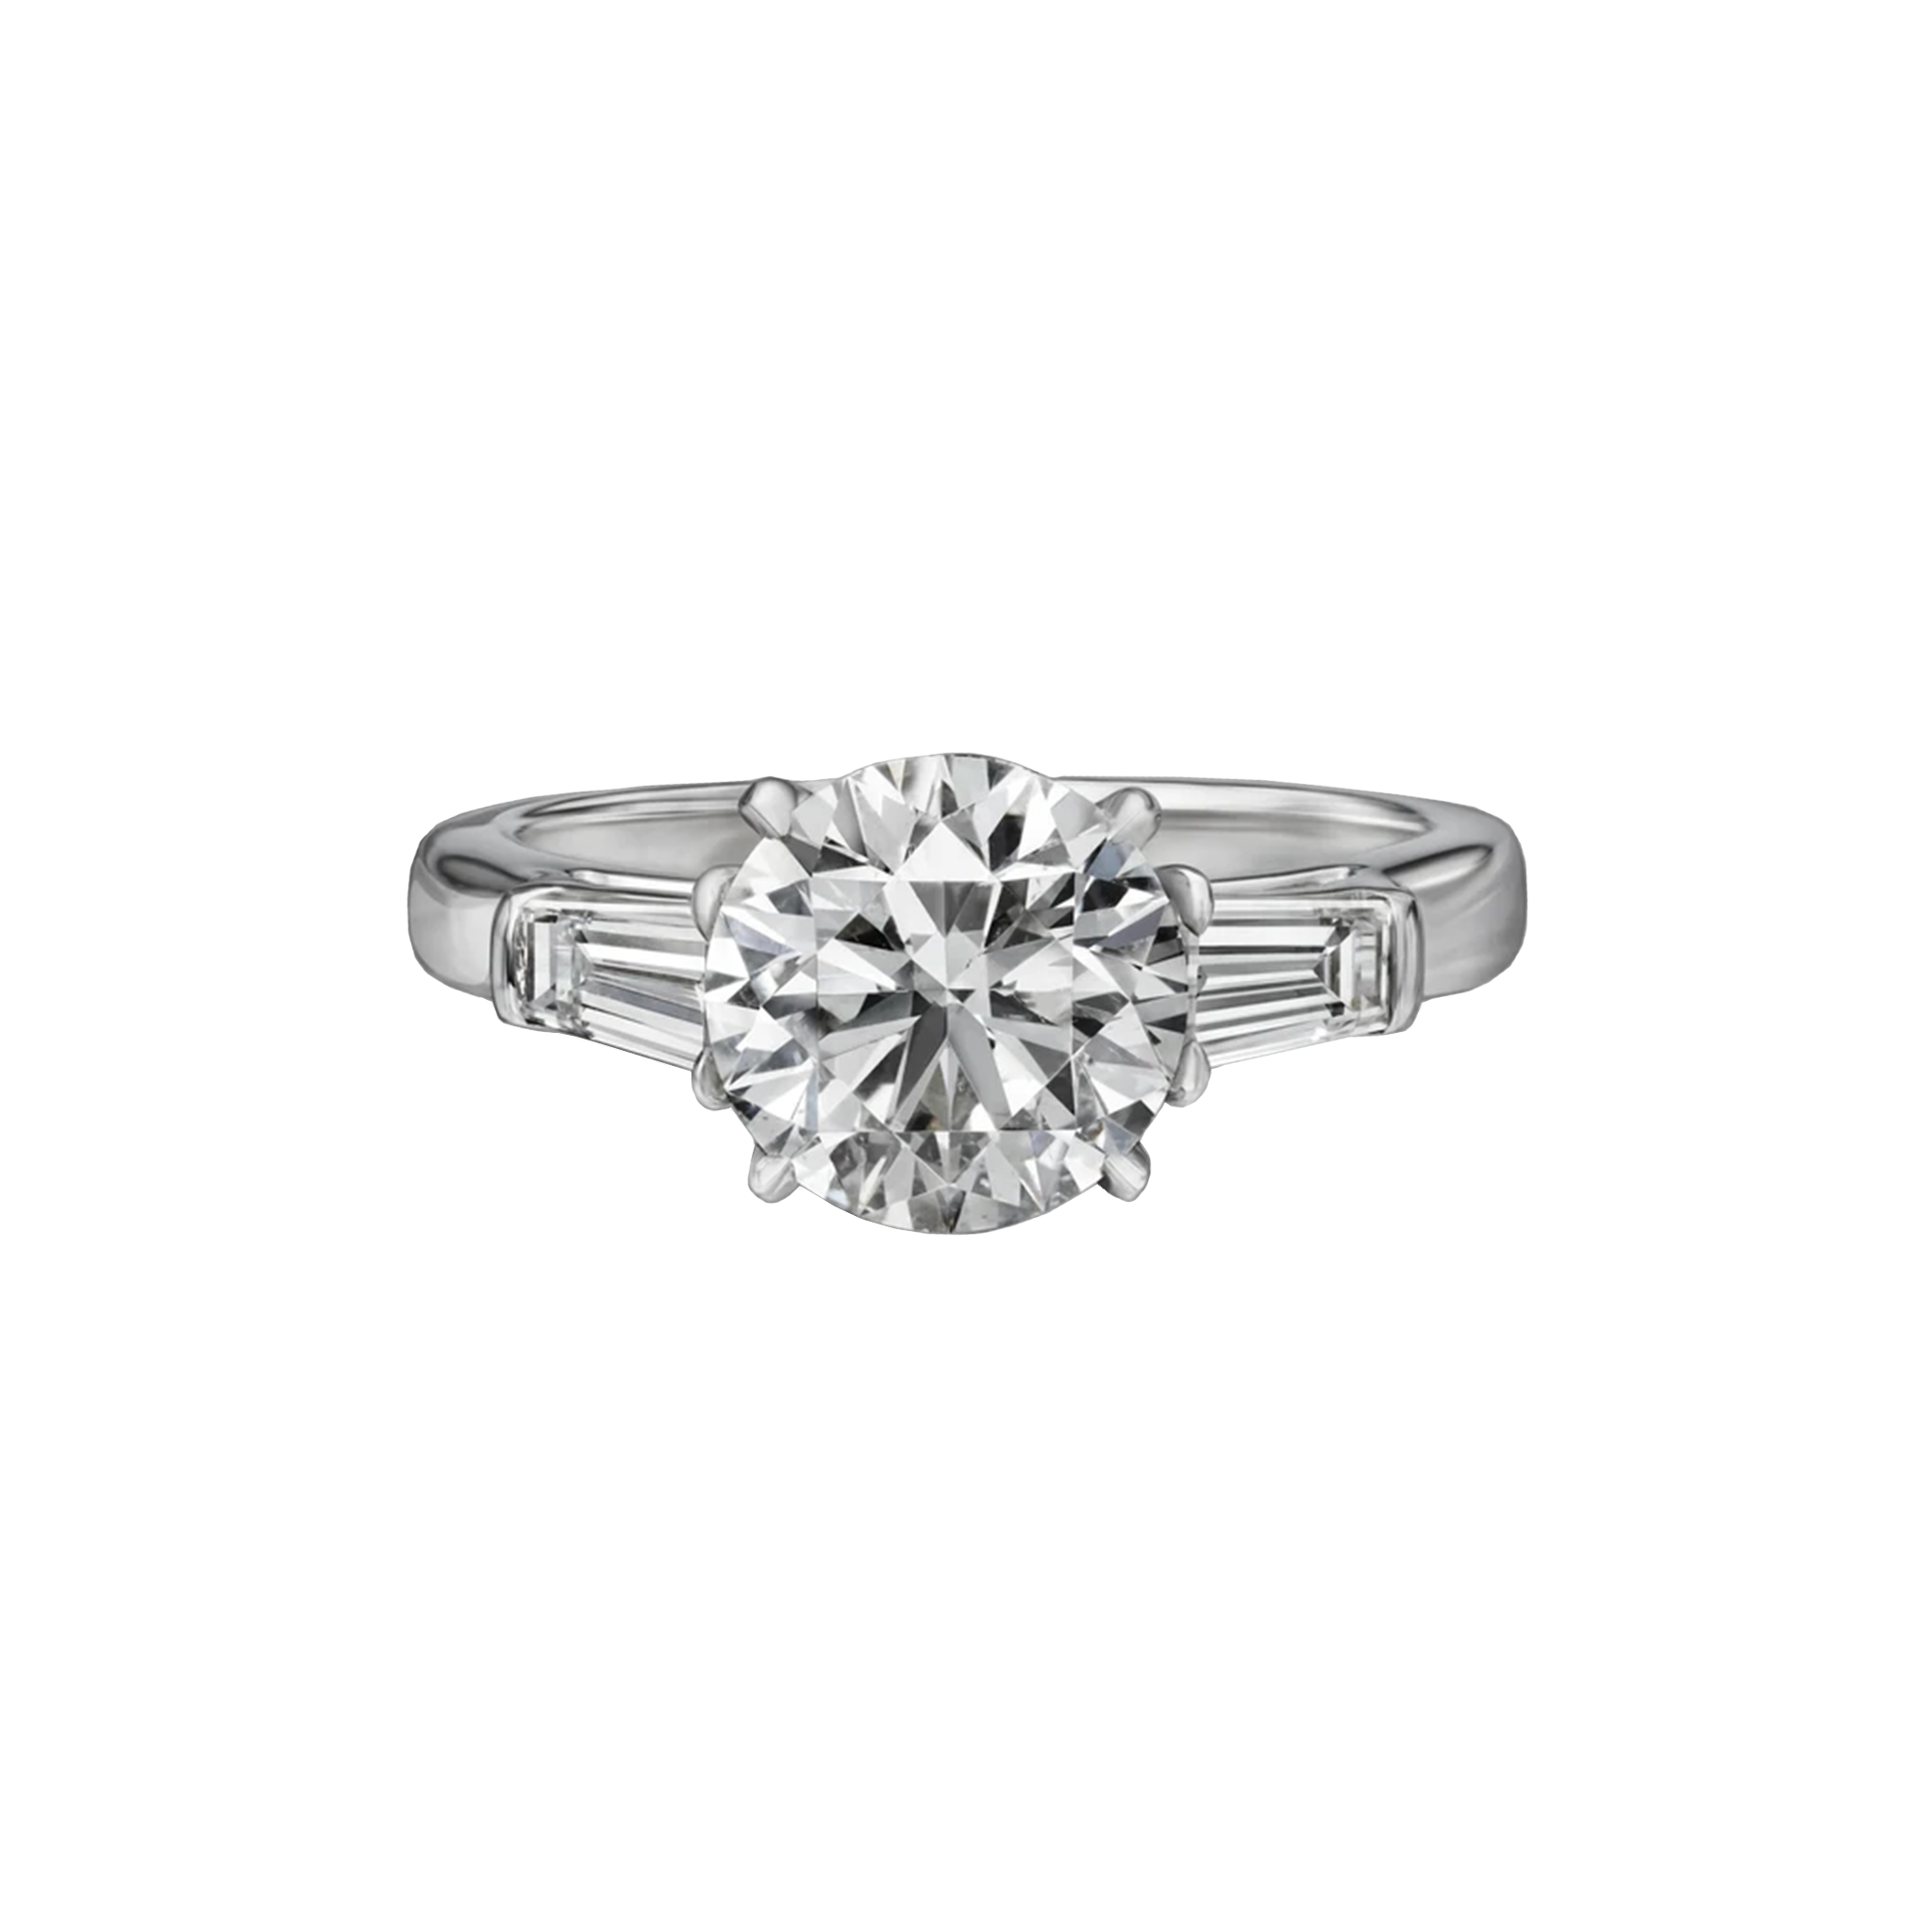 2.30 Carat Round Brilliant Cut Engagement Ring with Tapered Baguettes